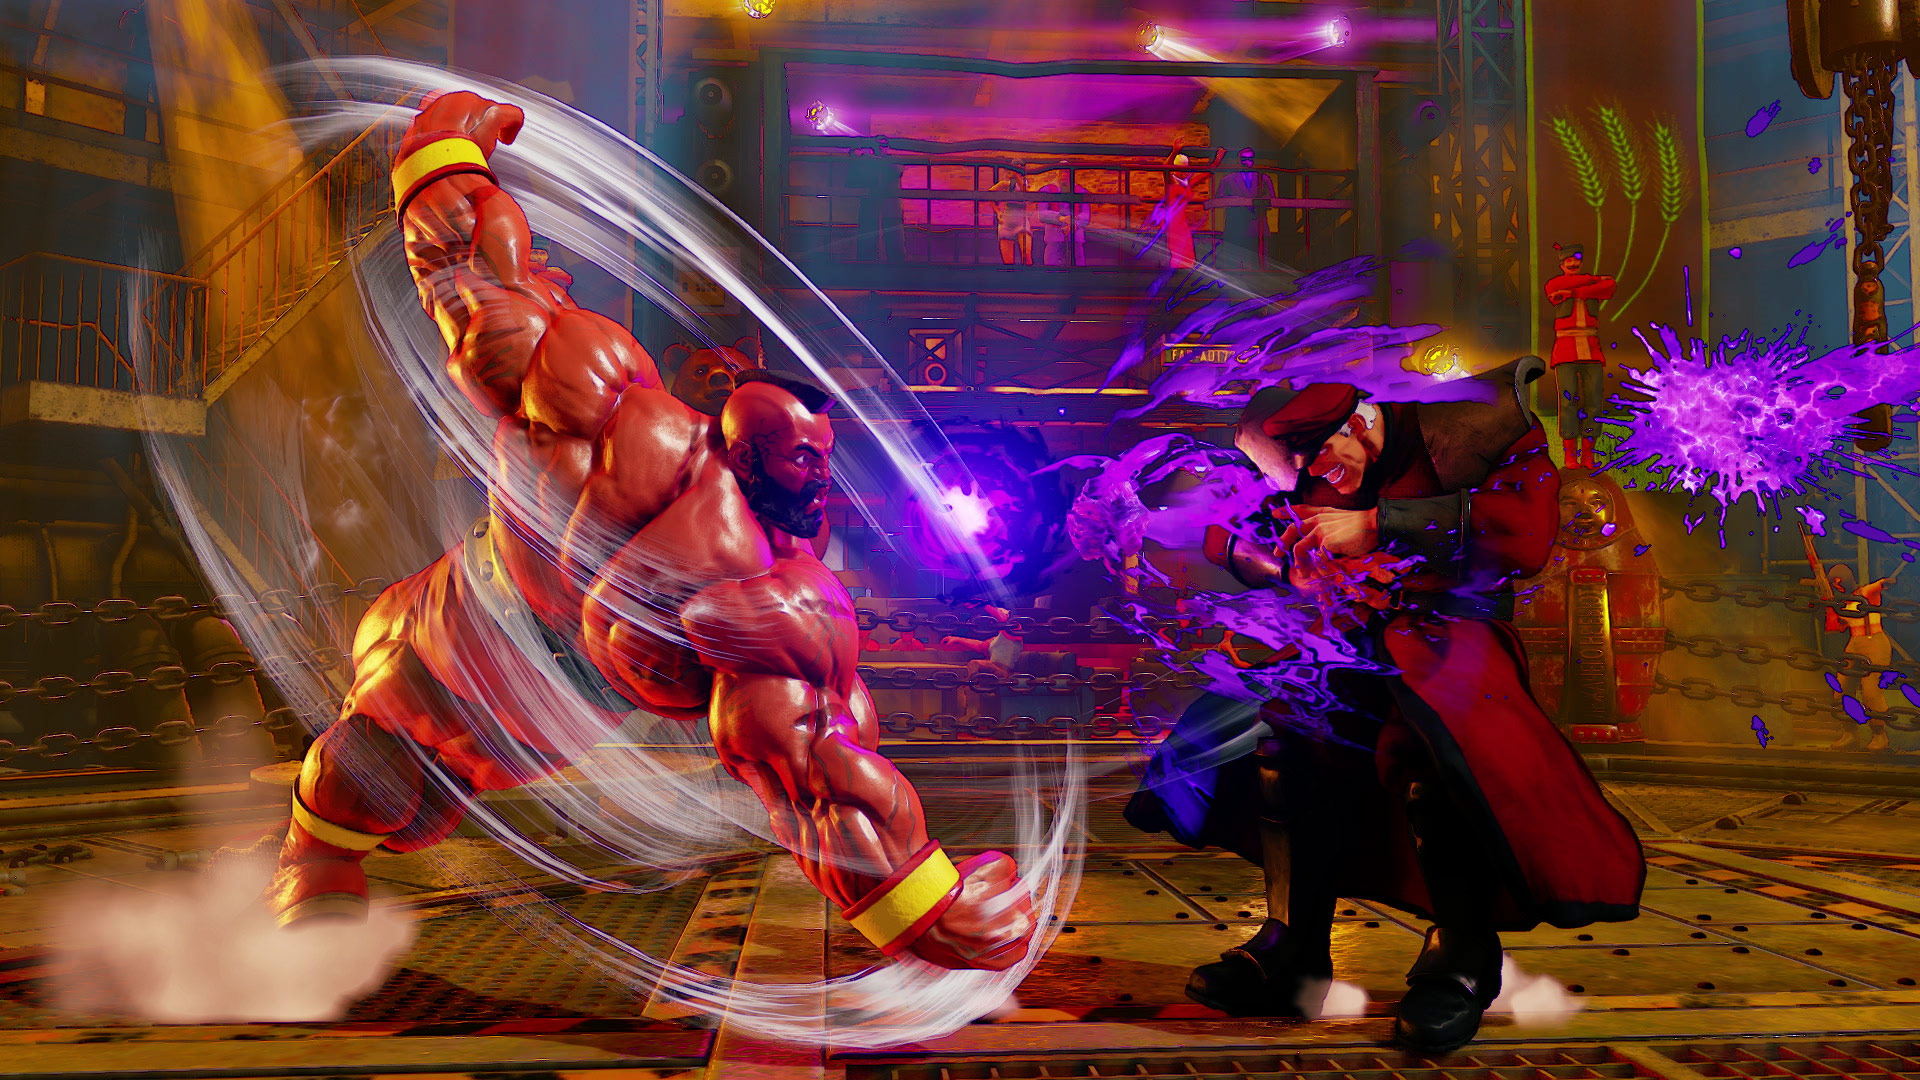 Zangief returns in Street Fighter 5 17 out of 18 image gallery